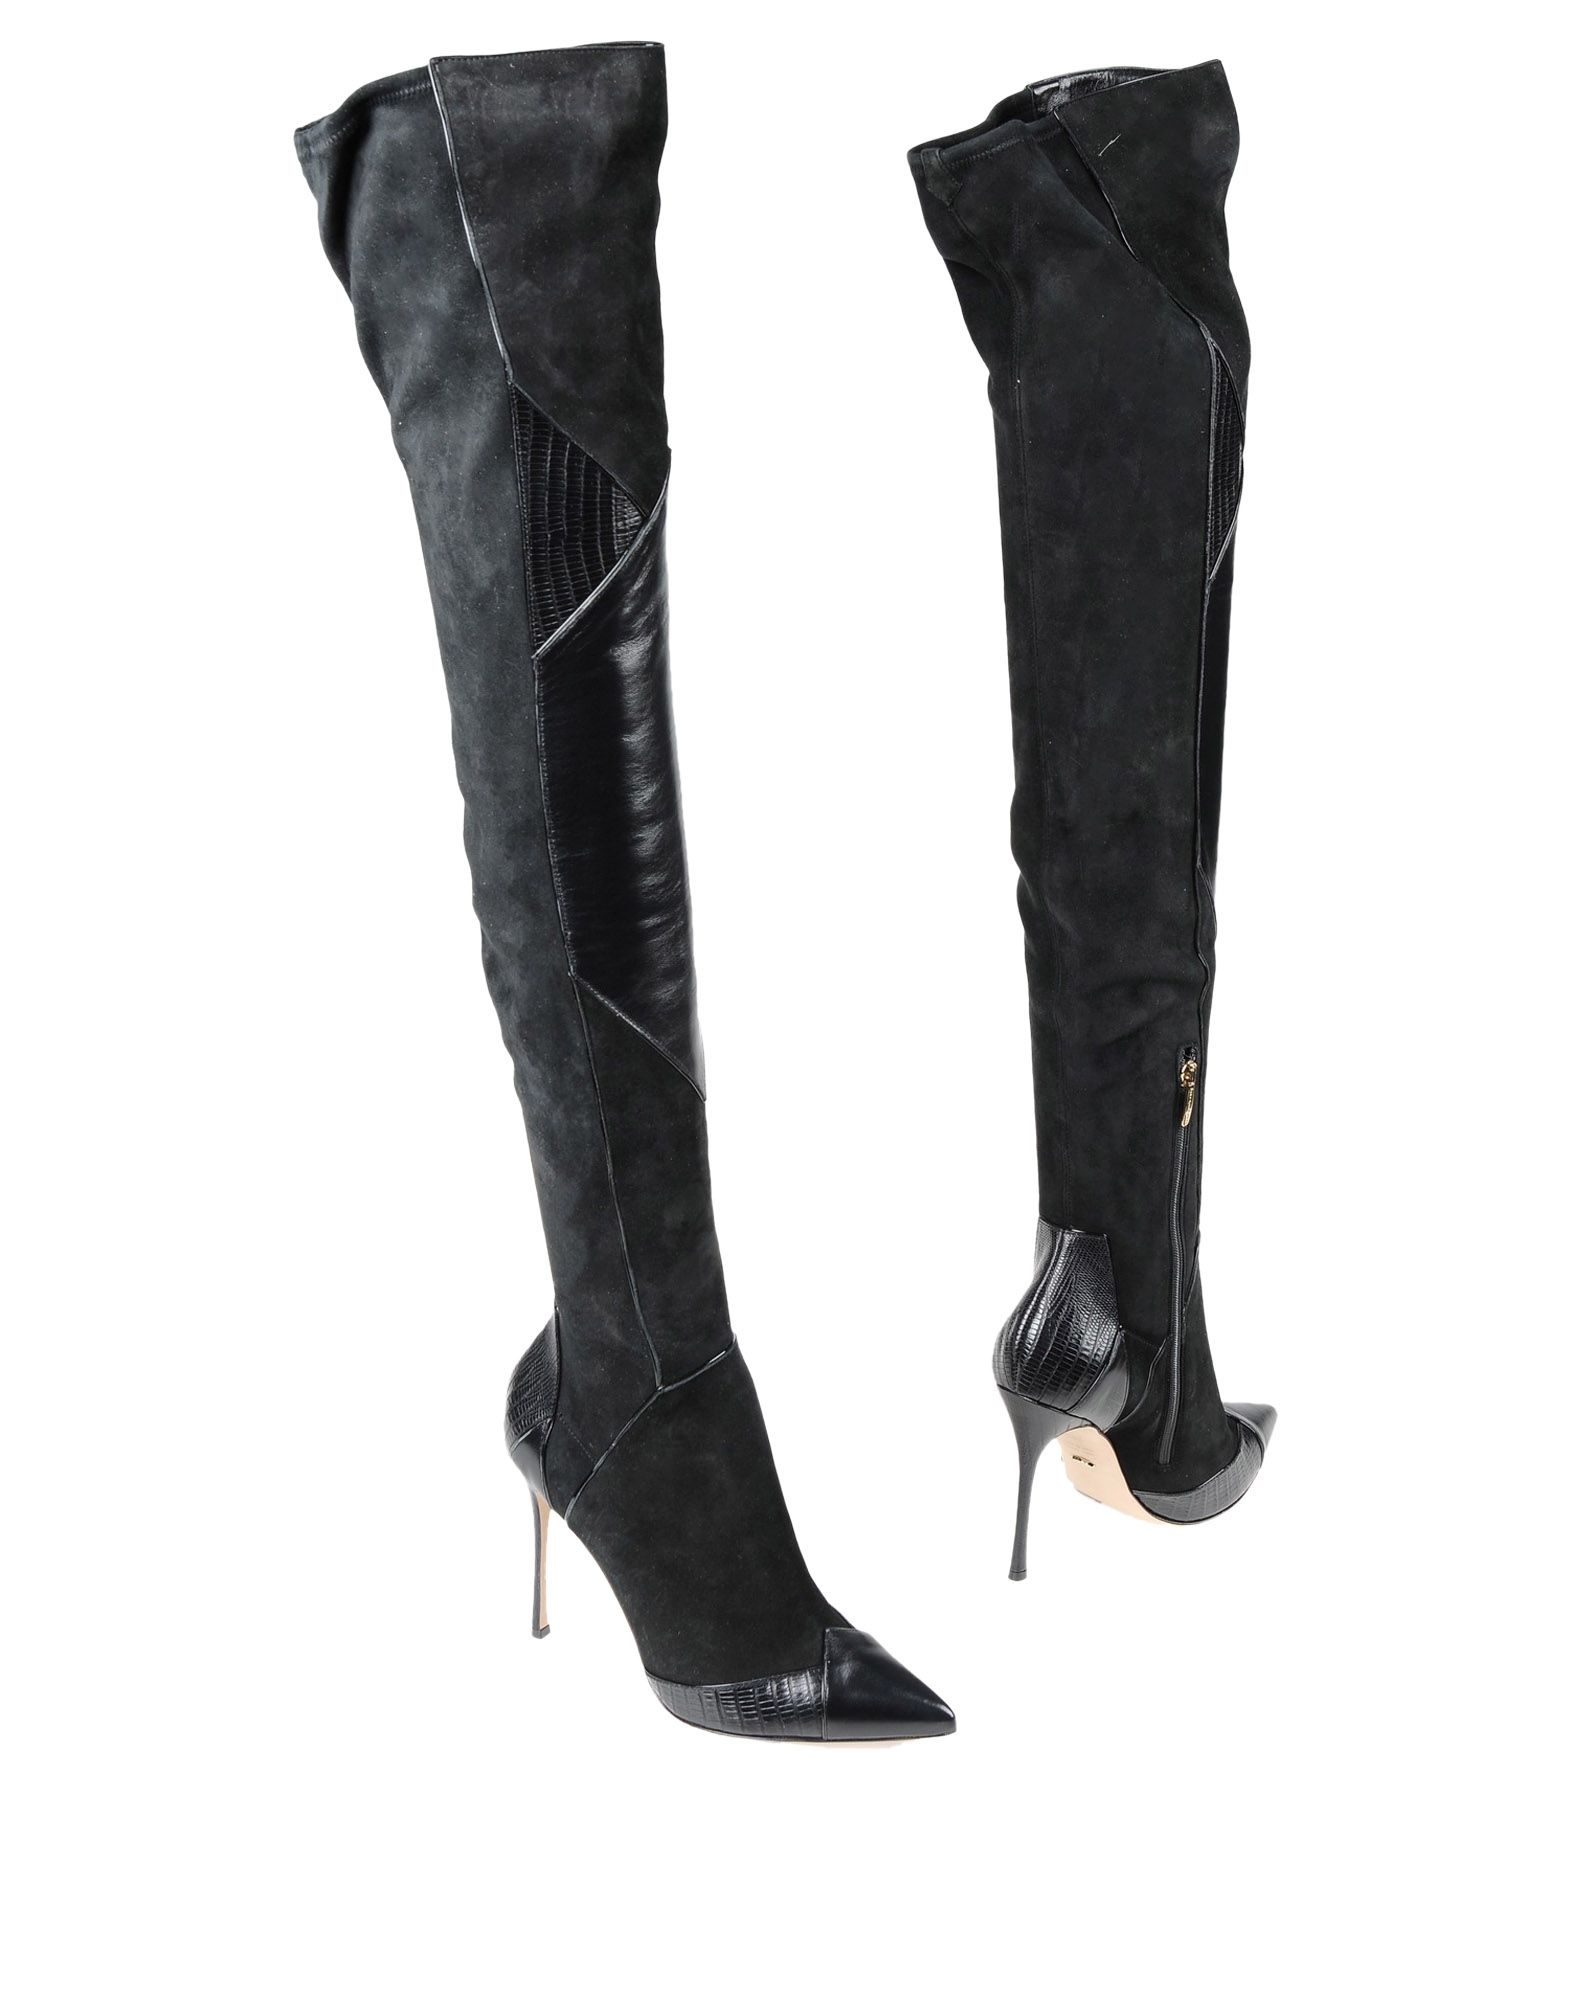 Sergio Rossi Boots Boots - Women Sergio Rossi Boots Boots online on  Canada - 11366384ET 1dd22a